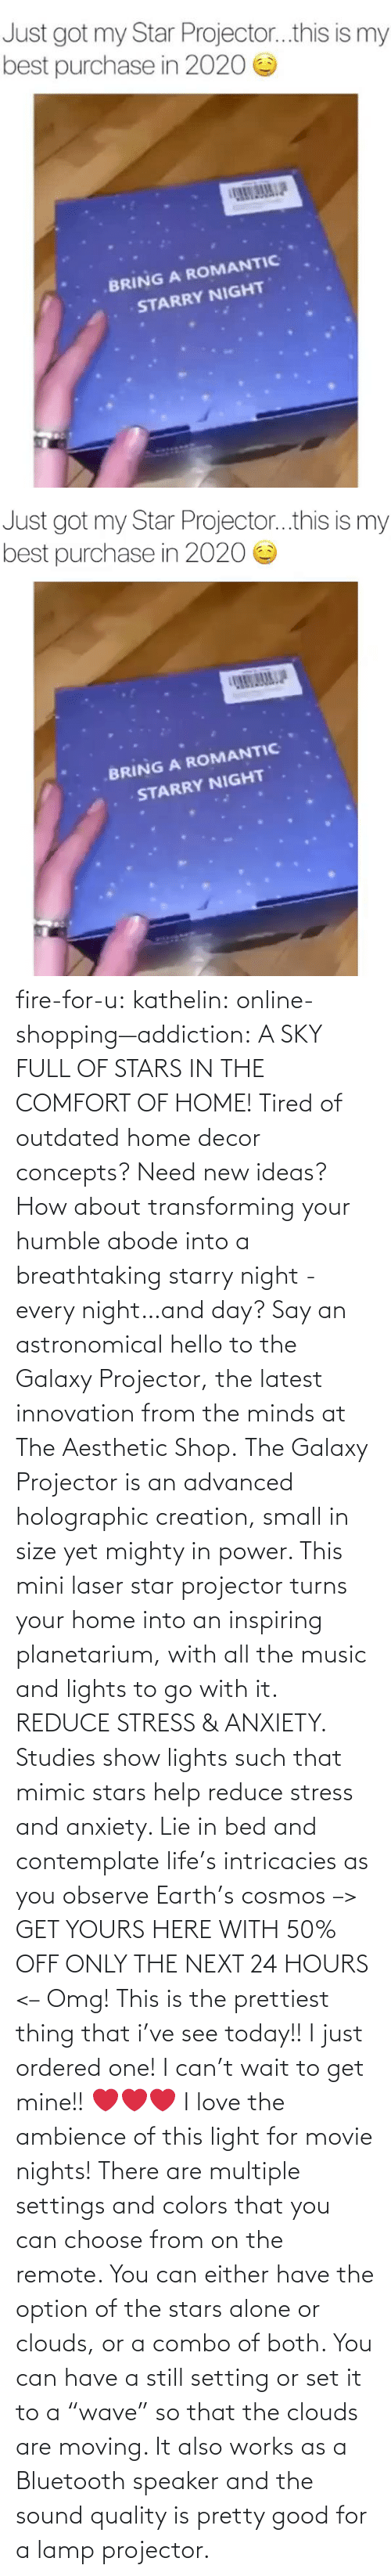 "sound: fire-for-u:  kathelin: online-shopping—addiction:  A SKY FULL OF STARS IN THE COMFORT OF HOME! Tired of outdated home decor concepts? Need new ideas? How about transforming your humble abode into a breathtaking starry night - every night…and day? Say an astronomical hello to the Galaxy Projector, the latest innovation from the minds at The Aesthetic Shop. The Galaxy Projector is an advanced holographic creation, small in size yet mighty in power. This mini laser star projector turns your home into an inspiring planetarium, with all the music and lights to go with it. REDUCE STRESS & ANXIETY. Studies show lights such that mimic stars help reduce stress and anxiety. Lie in bed and contemplate life's intricacies as you observe Earth's cosmos  –> GET YOURS HERE WITH 50% OFF ONLY THE NEXT 24 HOURS <–   Omg! This is the prettiest thing that i've see today!! I just ordered one! I can't wait to get mine!! ❤️️❤️️❤️️  I love the ambience of this light for movie nights! There are multiple settings and colors that you can choose from on the remote. You can either have the option of the stars alone or clouds, or a combo of both. You can have a still setting or set it to a ""wave"" so that the clouds are moving. It also works as a Bluetooth speaker and the sound quality is pretty good for a lamp projector."